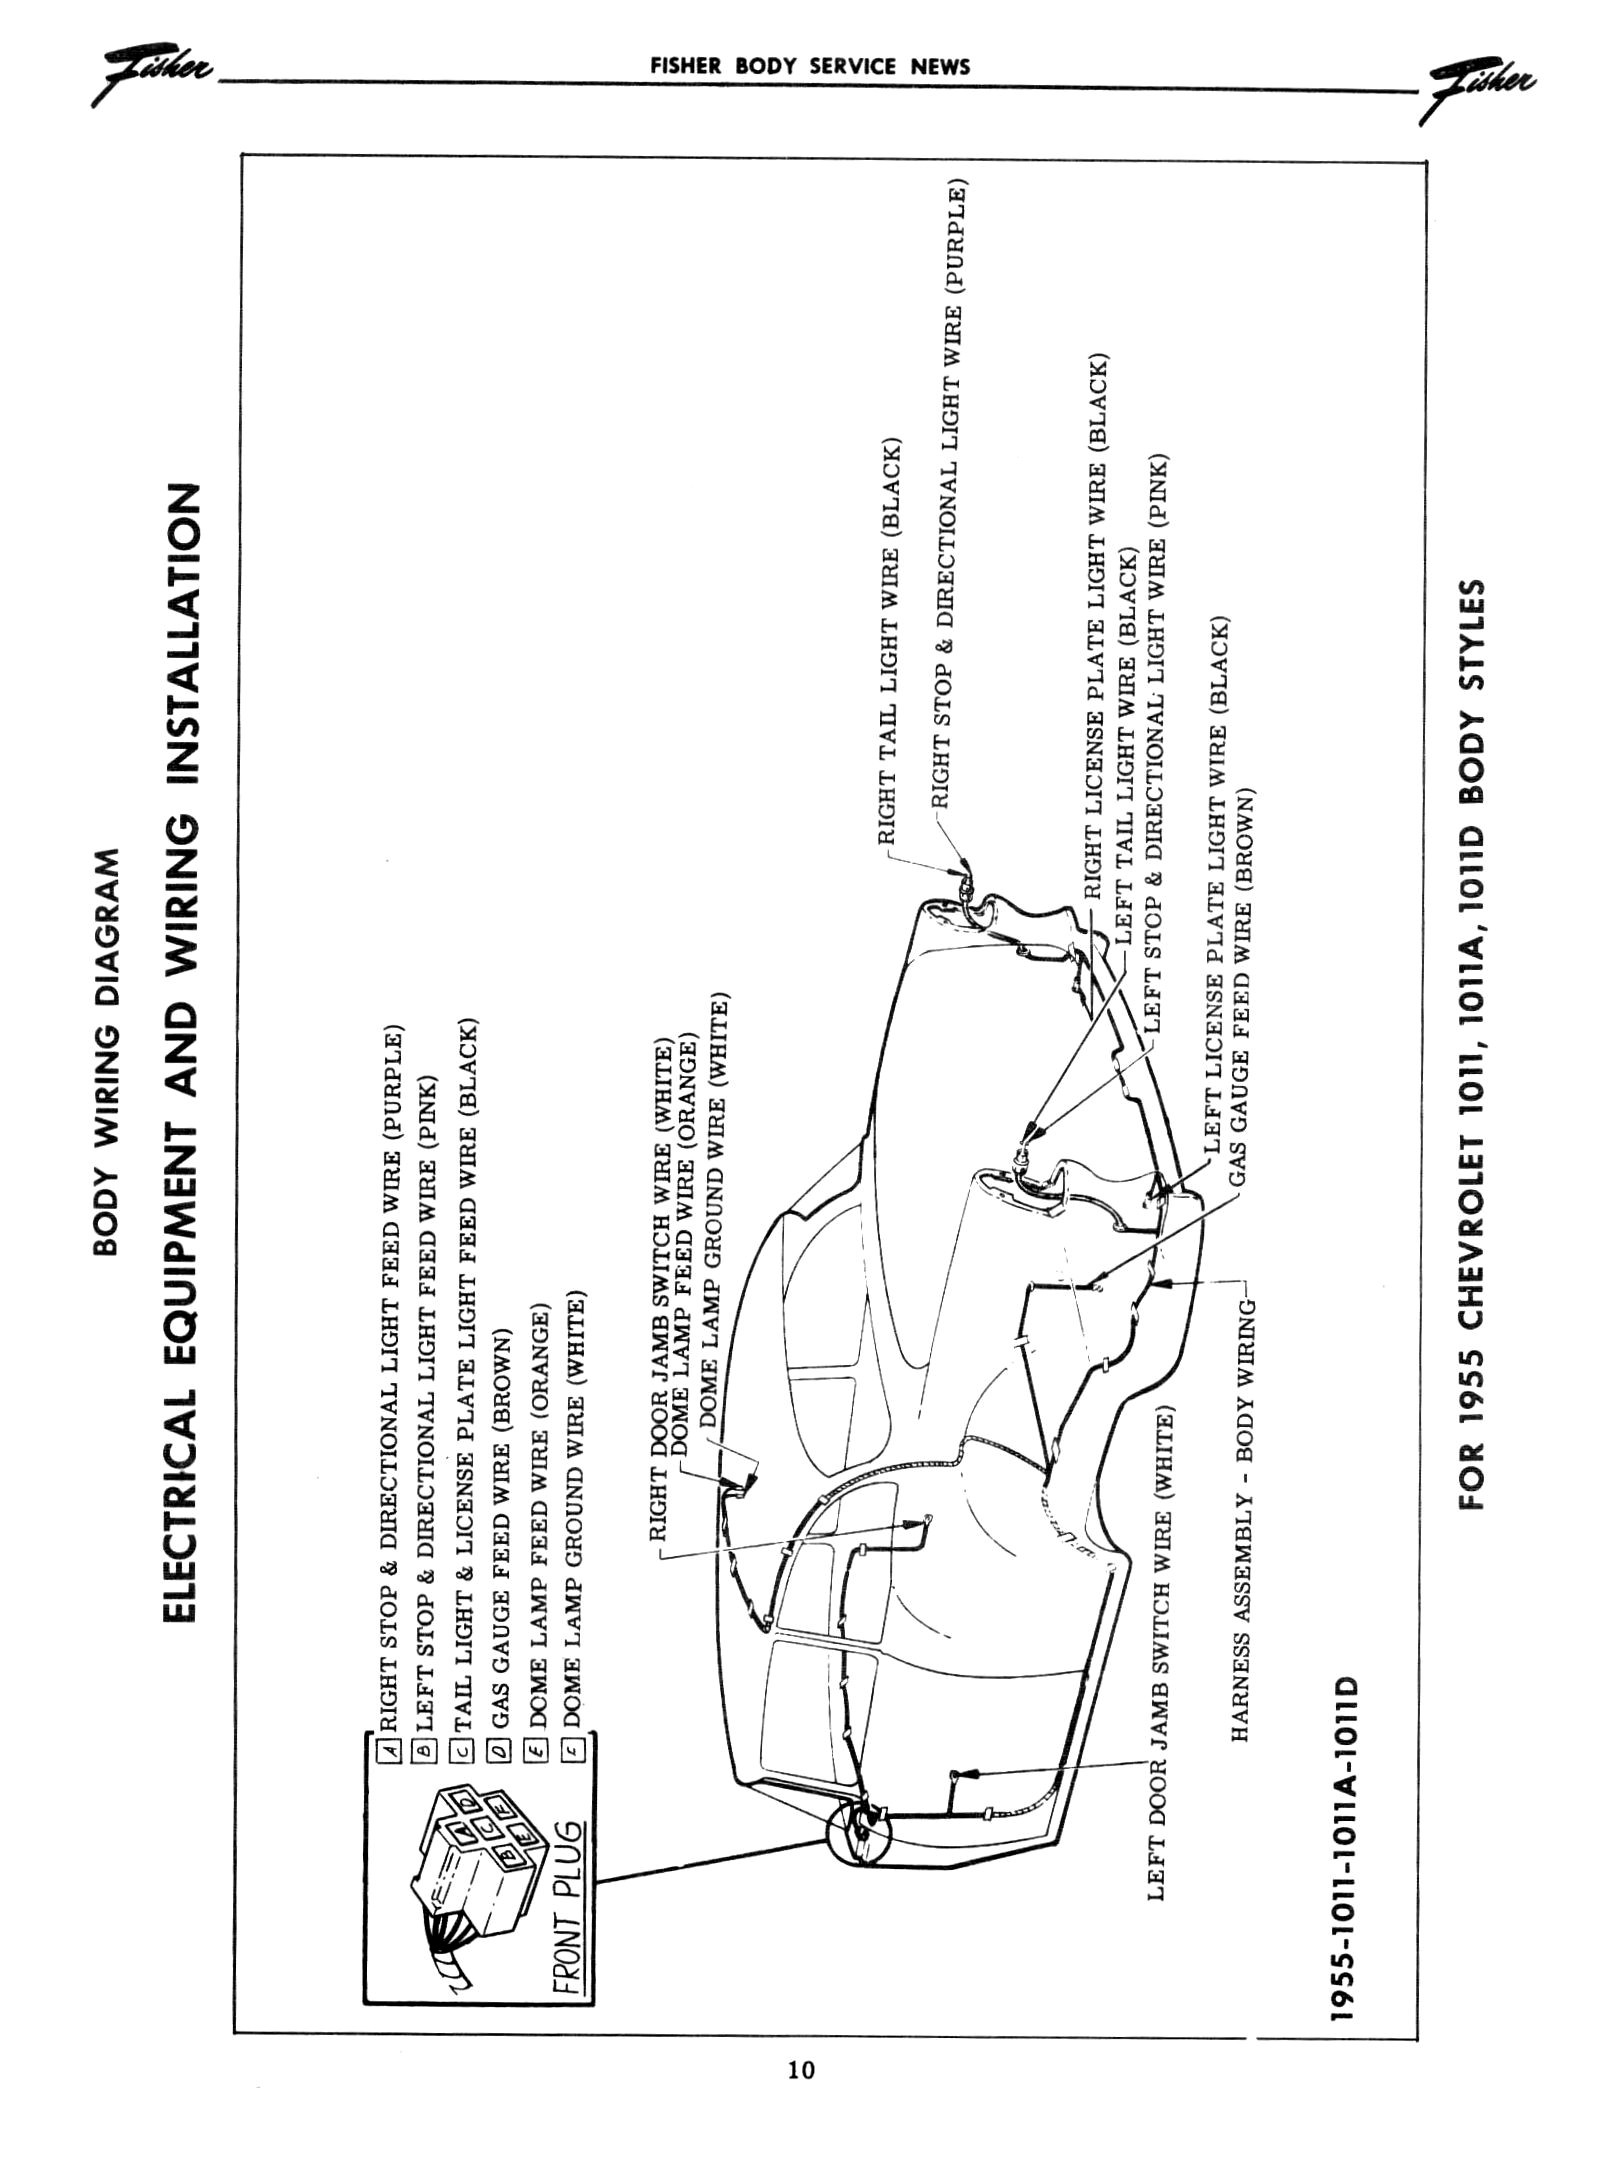 56 Chevy Truck Ignition Switch Wiring Diagram Wiring